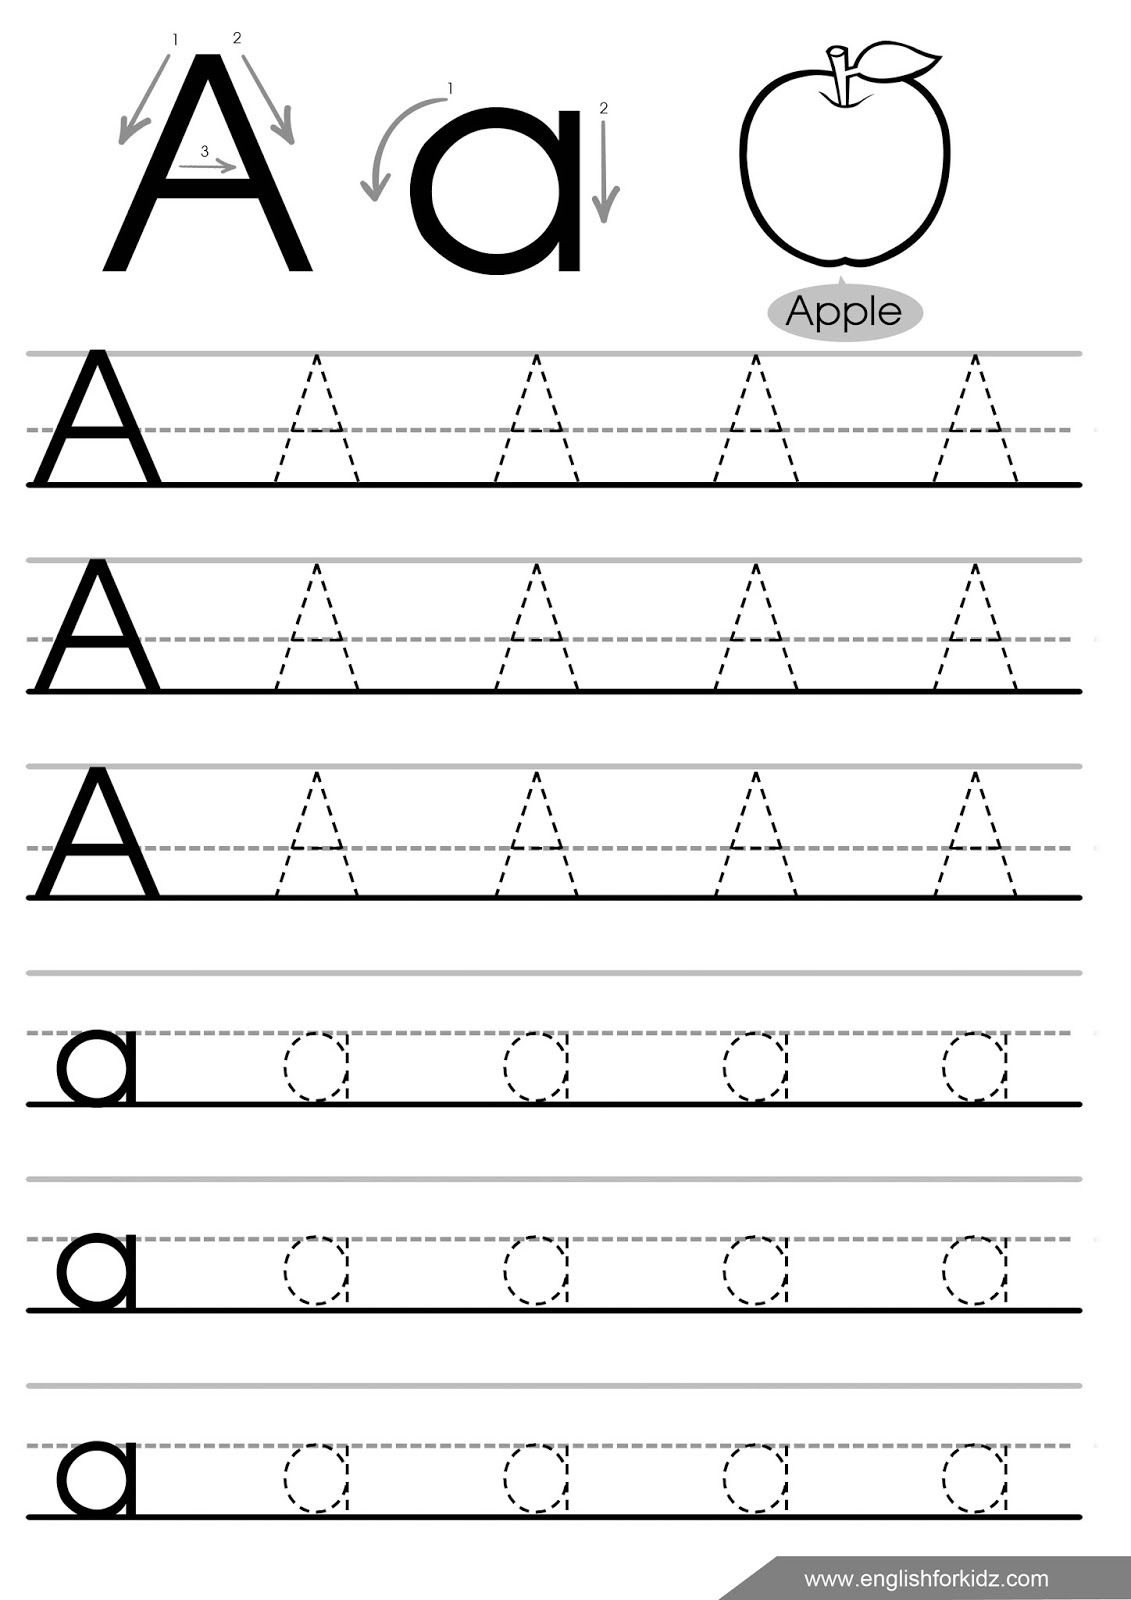 Pin On Letter Tracing Worksheets inside Letter A Tracing Worksheets Pdf